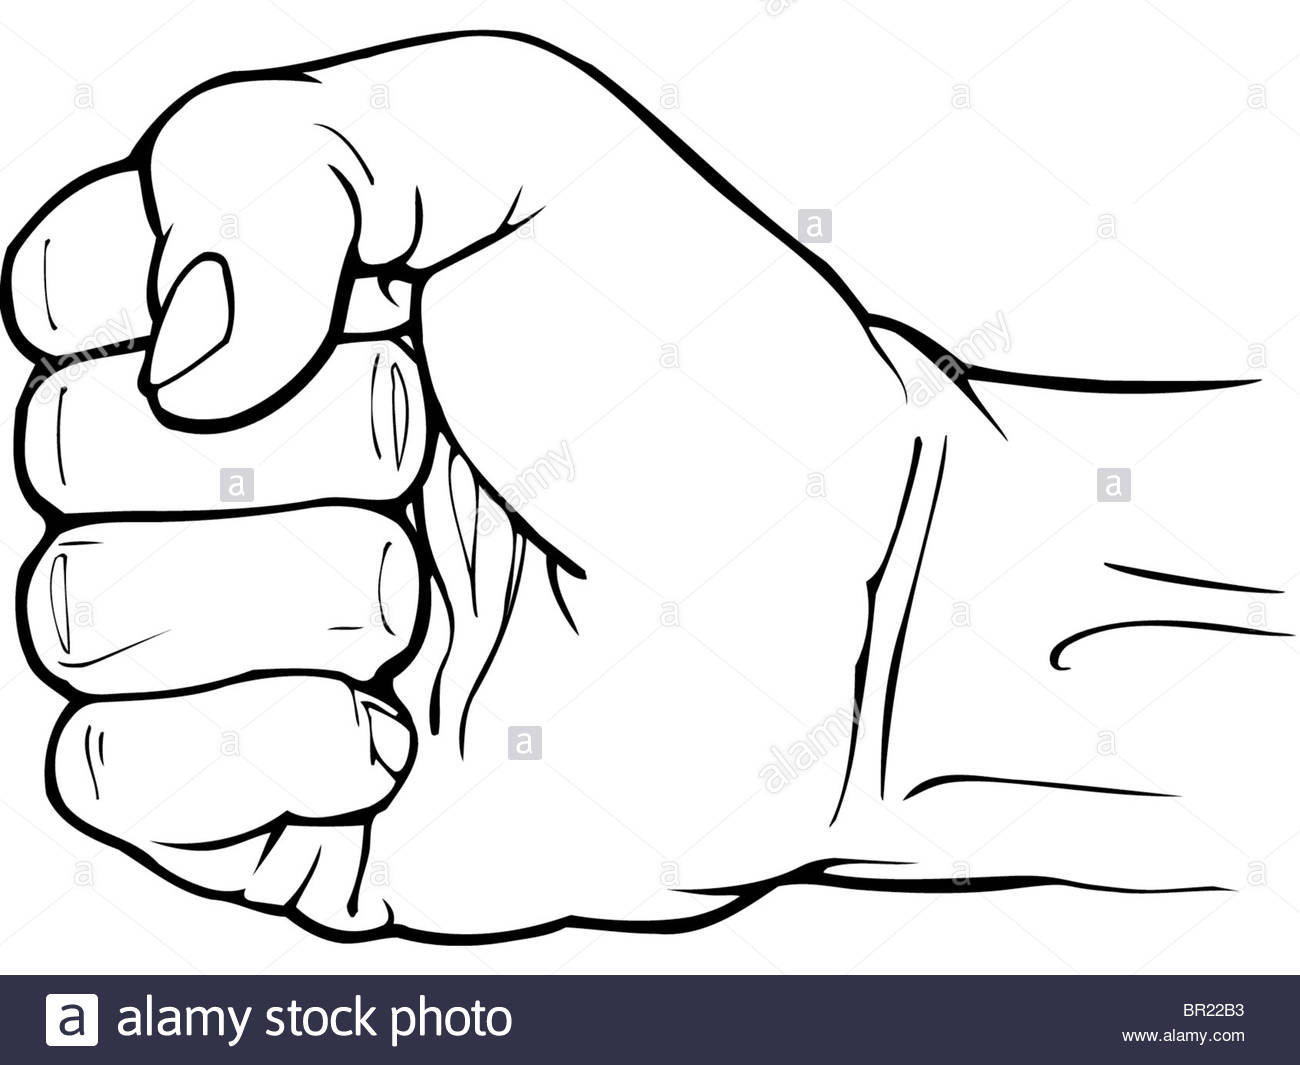 1300x1065 Drawing Of A Fist Fist Royalty Free Cliparts, Vectors, And Stock